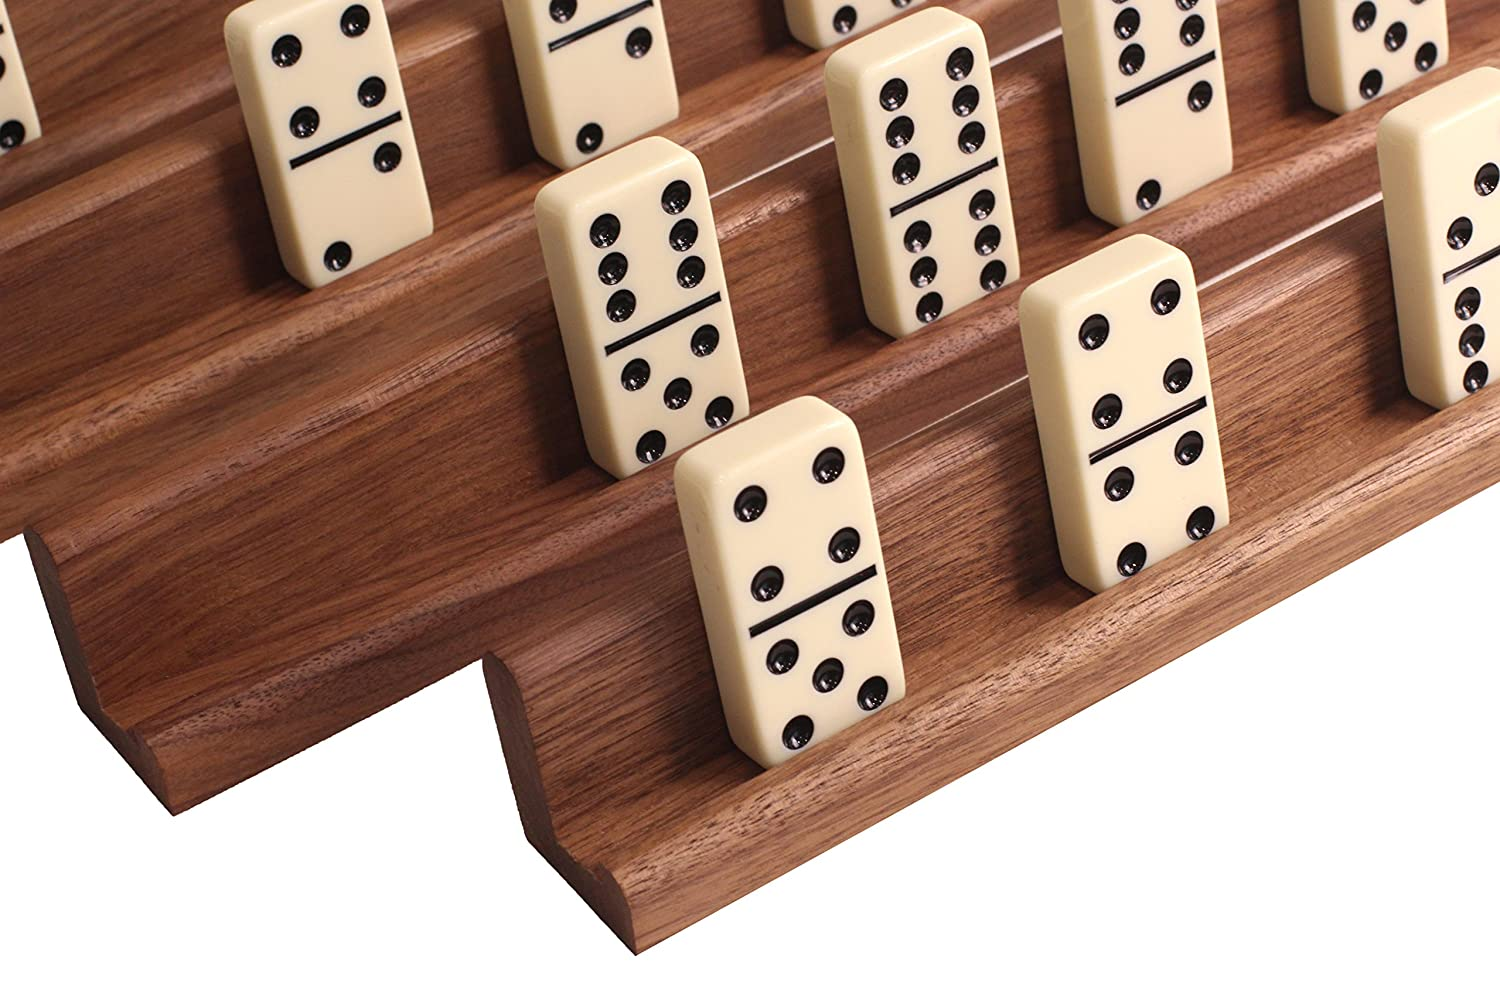 Easy-View Domino Racks for Maximum Visibility and Ease in organizing Your Hand. Solid American Black Walnut